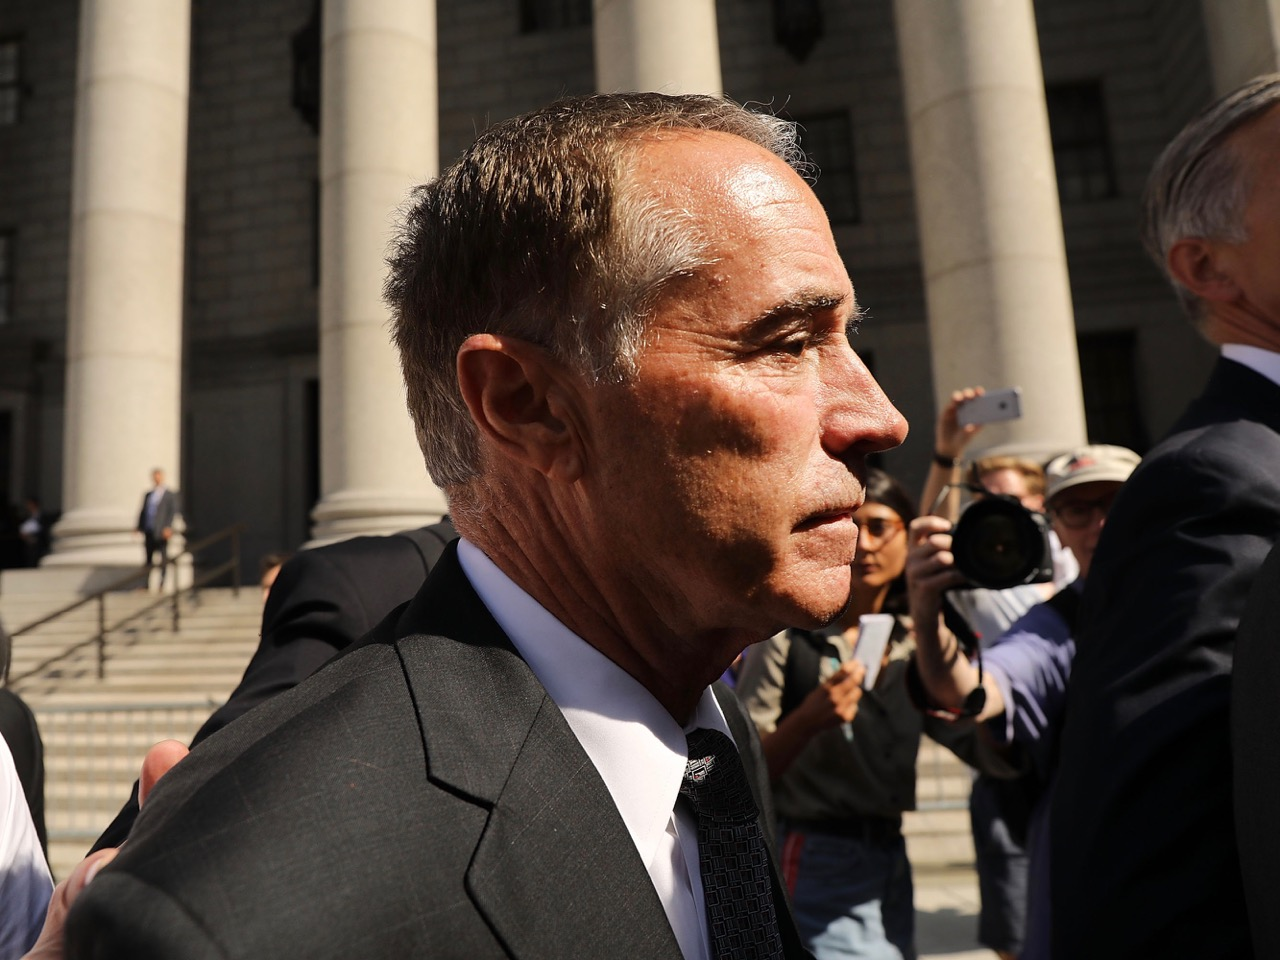 Rep. Chris Collins (R-NY) Arrested On Insider Trading Charges